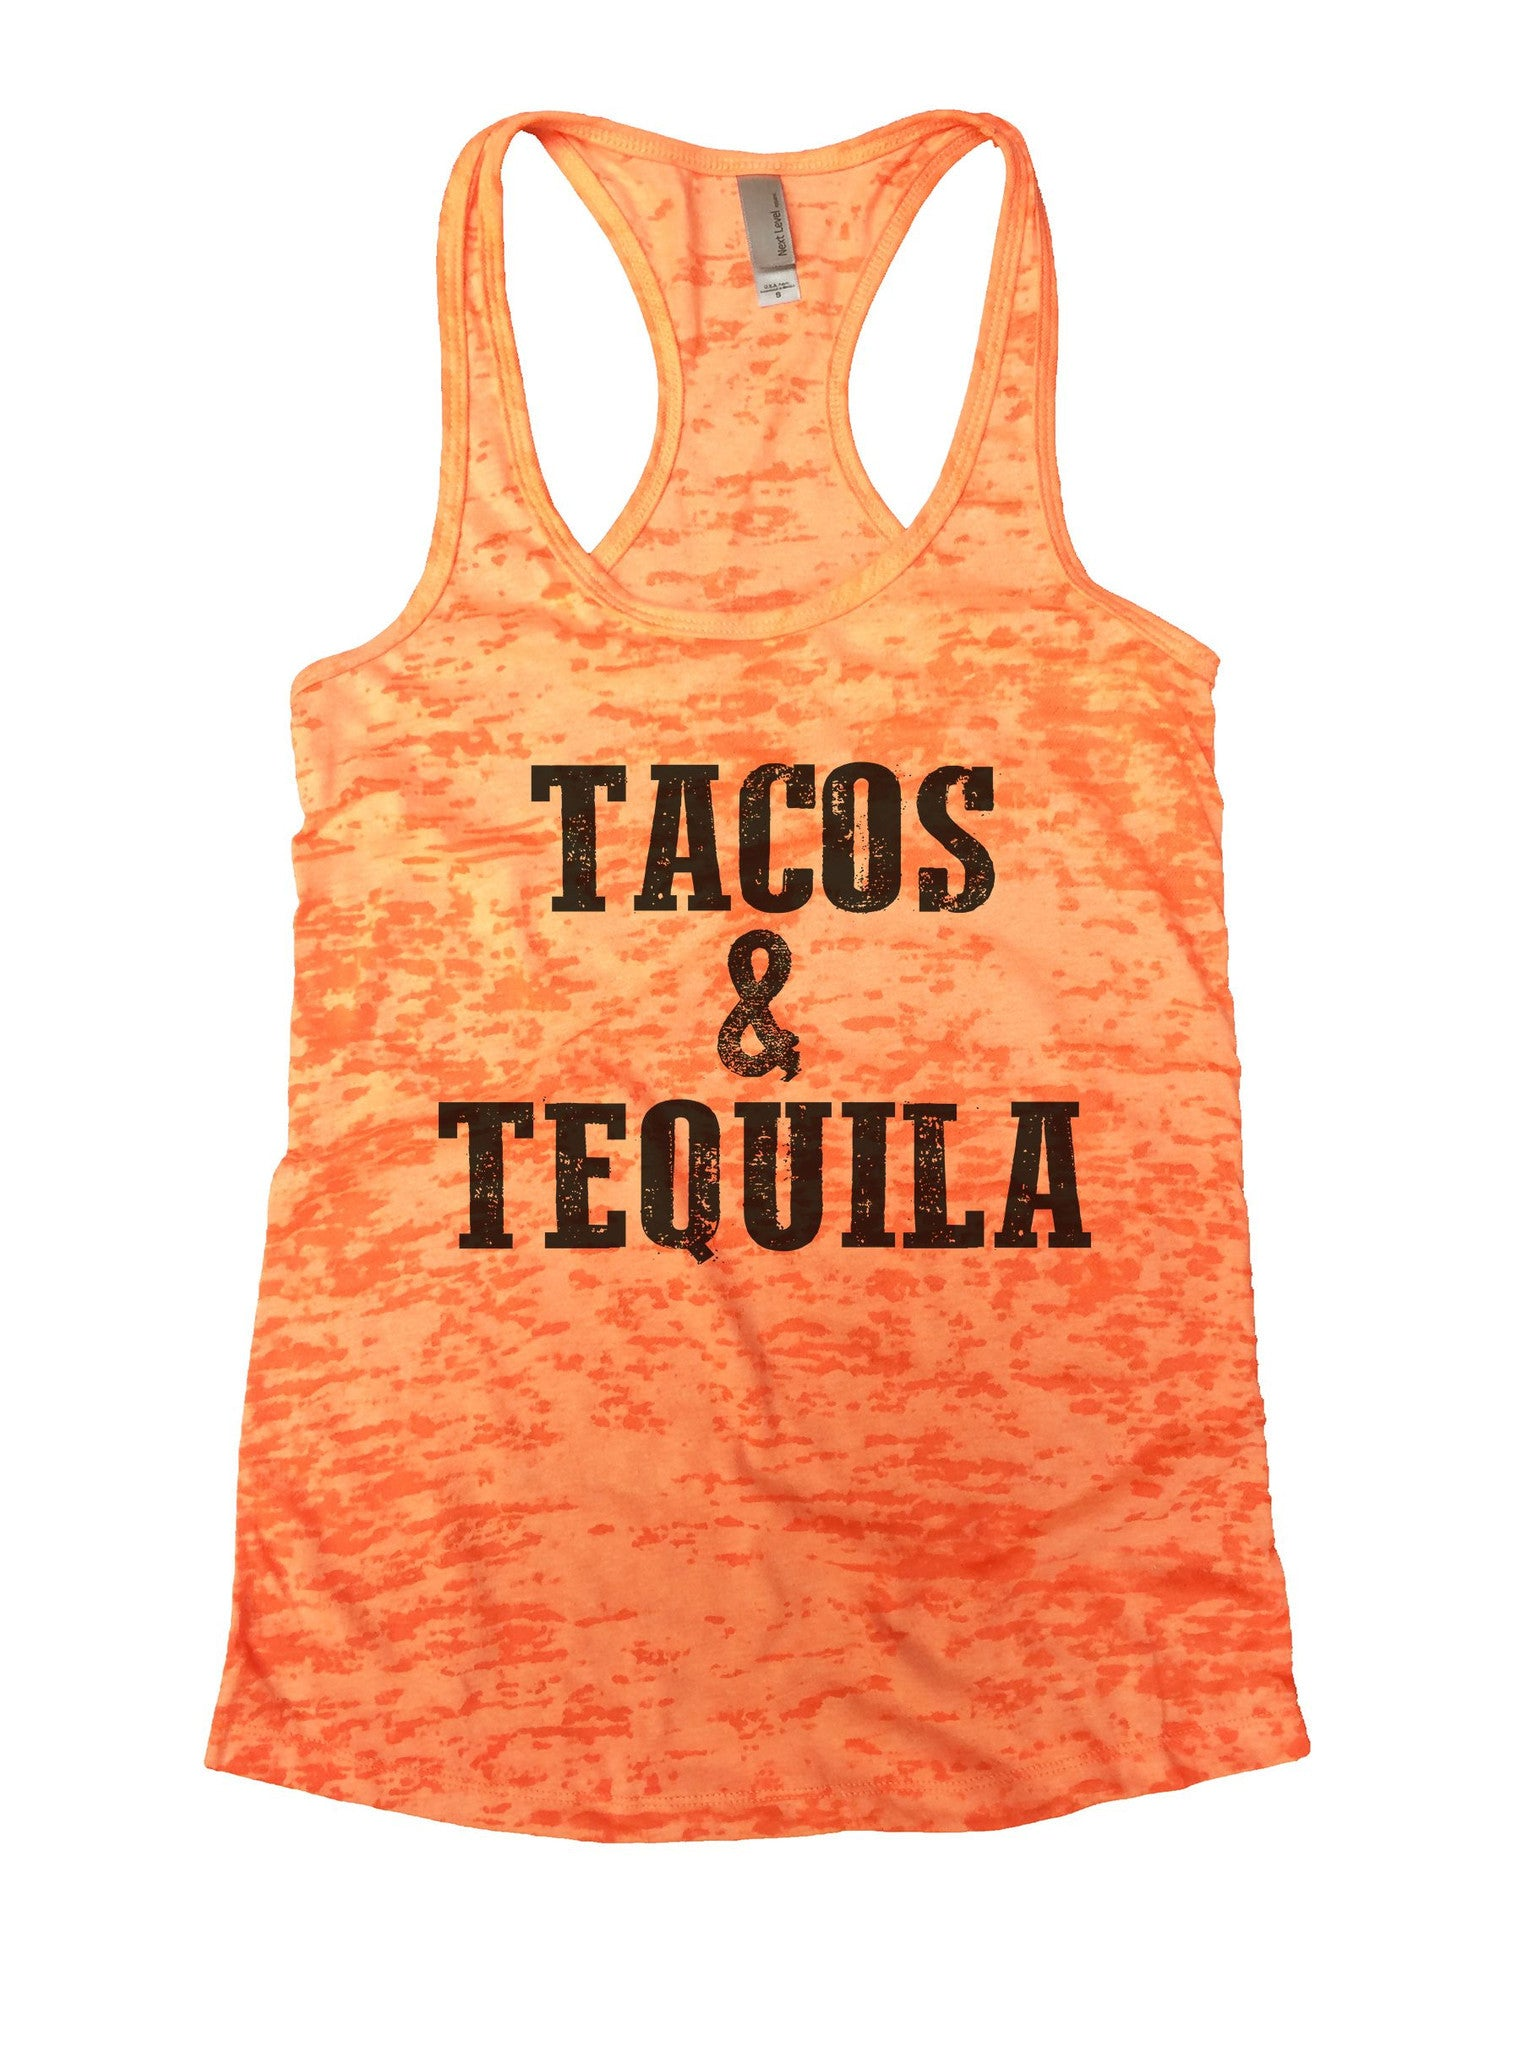 Tacos & Tequila Burnout Tank Top By BurnoutTankTops.com - 1103 - Funny Shirts Tank Tops Burnouts and Triblends  - 3